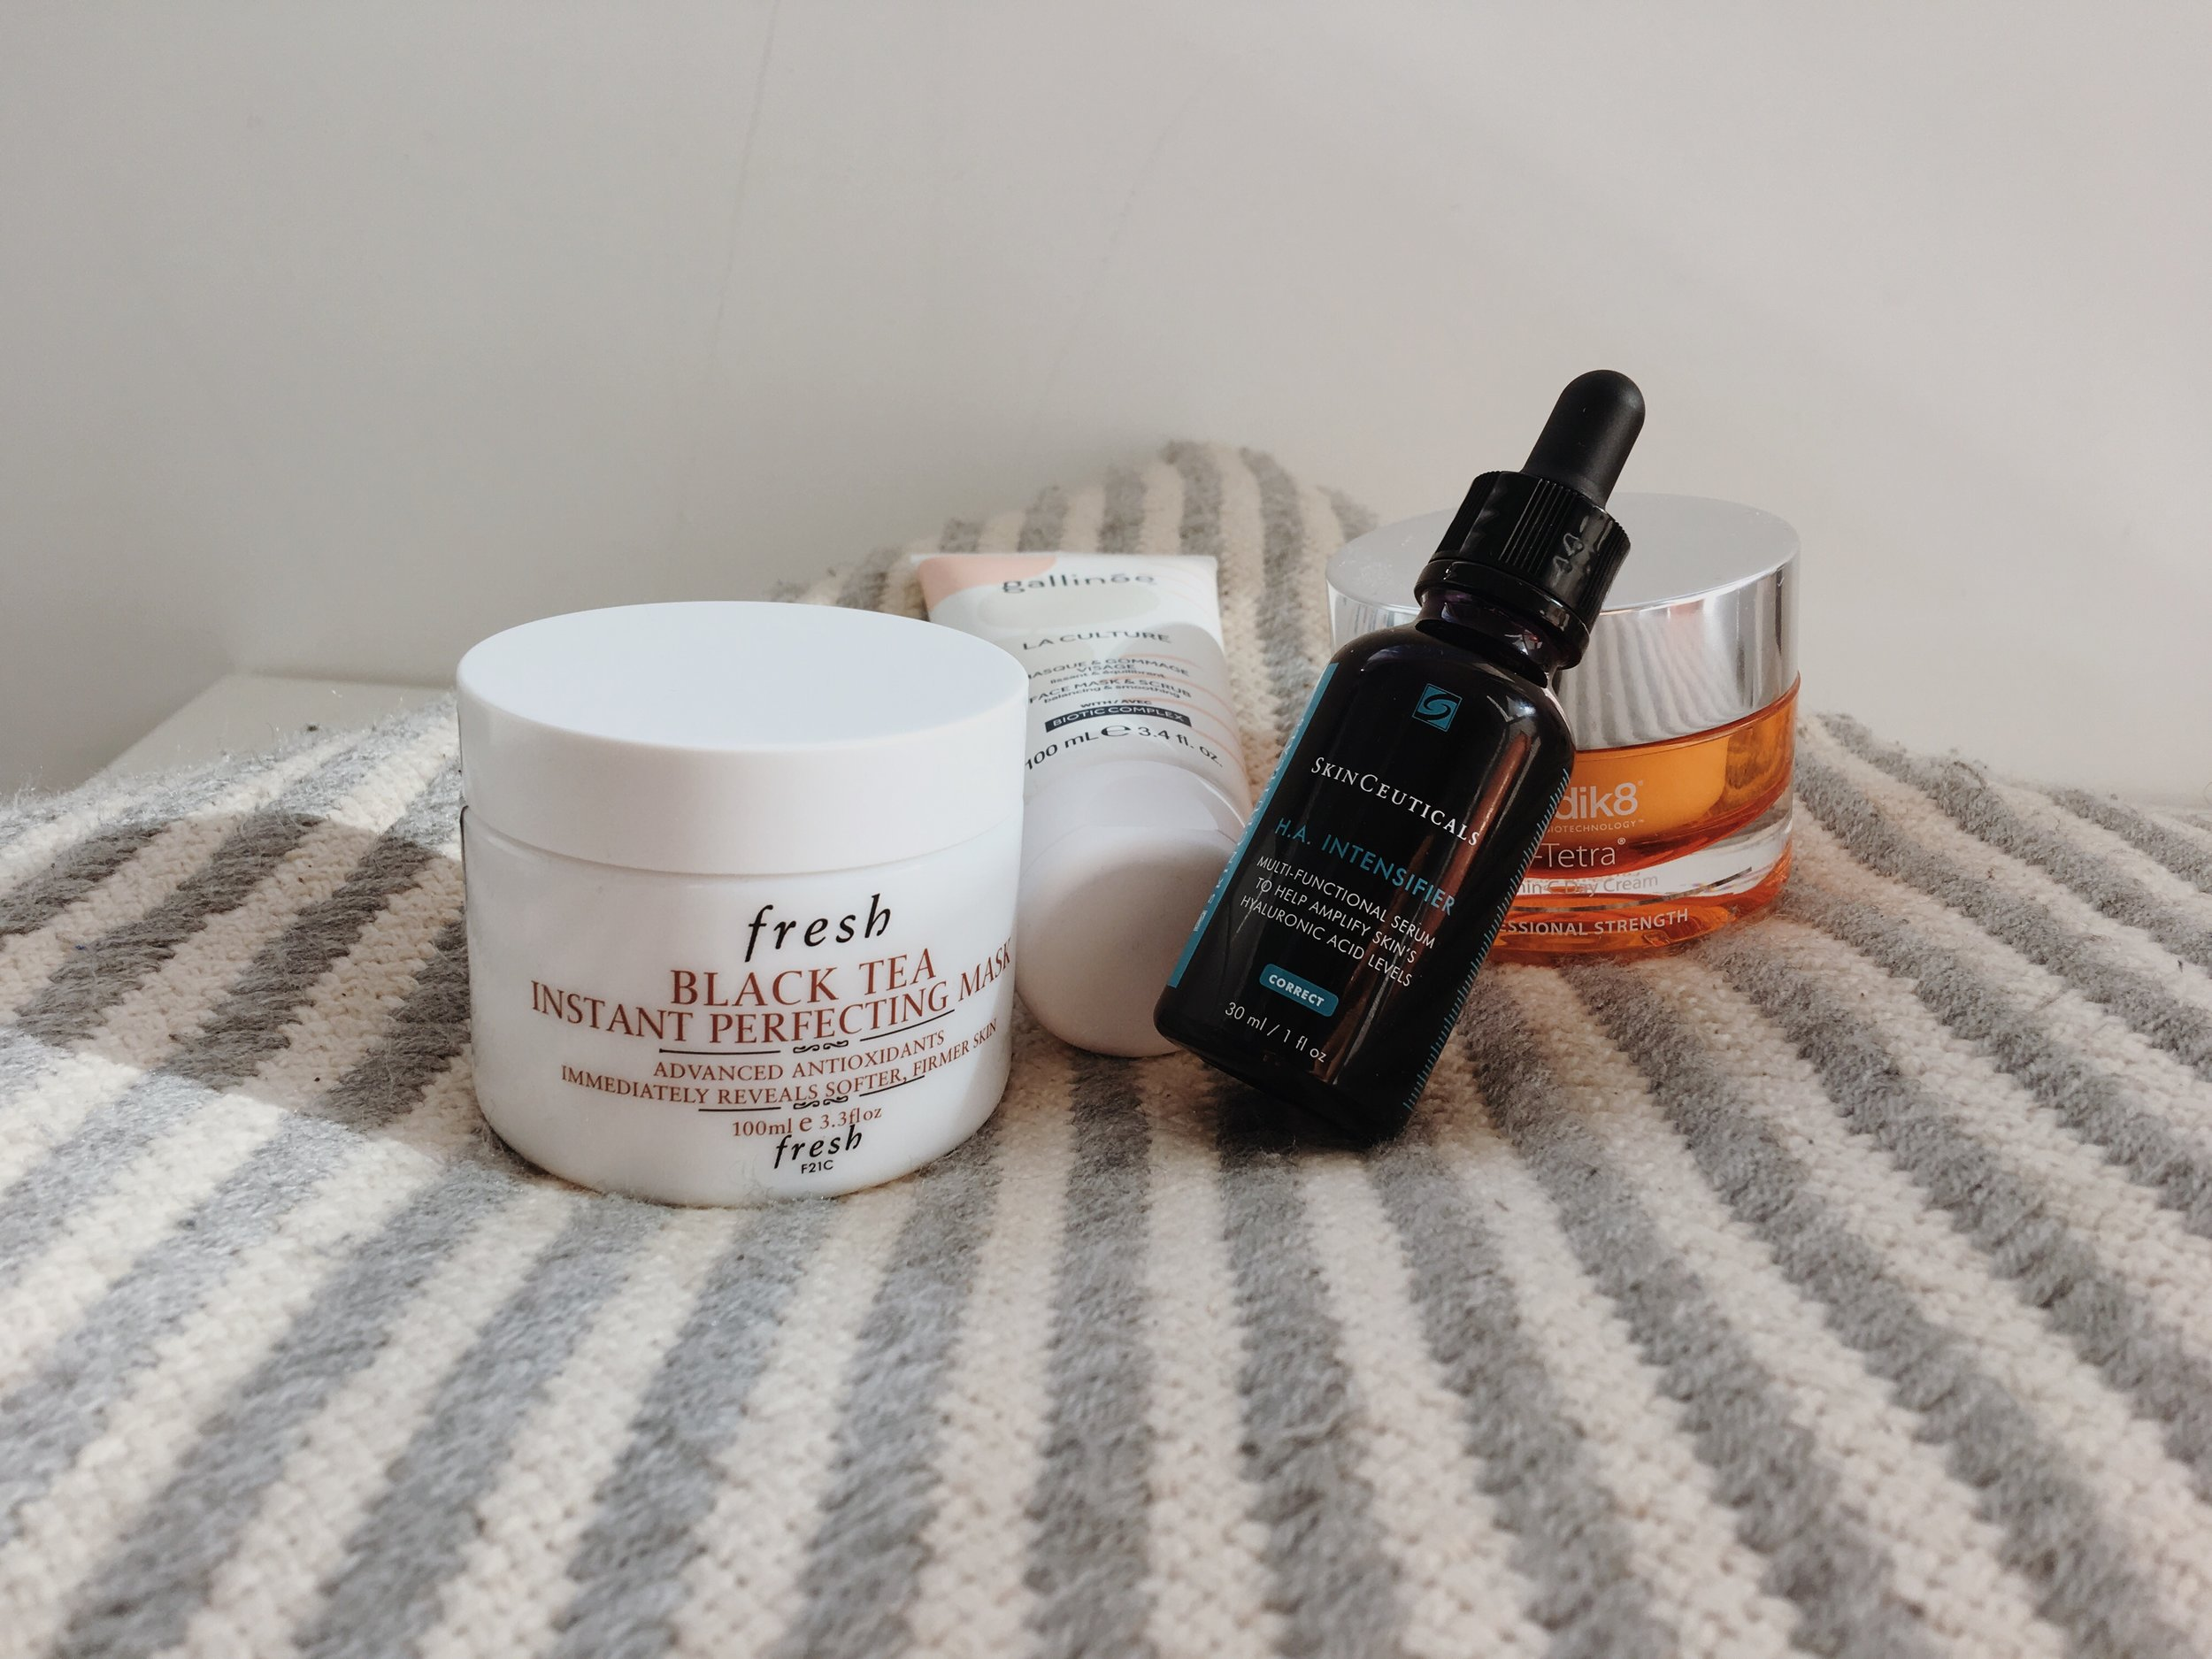 JHM - NEW IN SKINCARE FOR WINTER